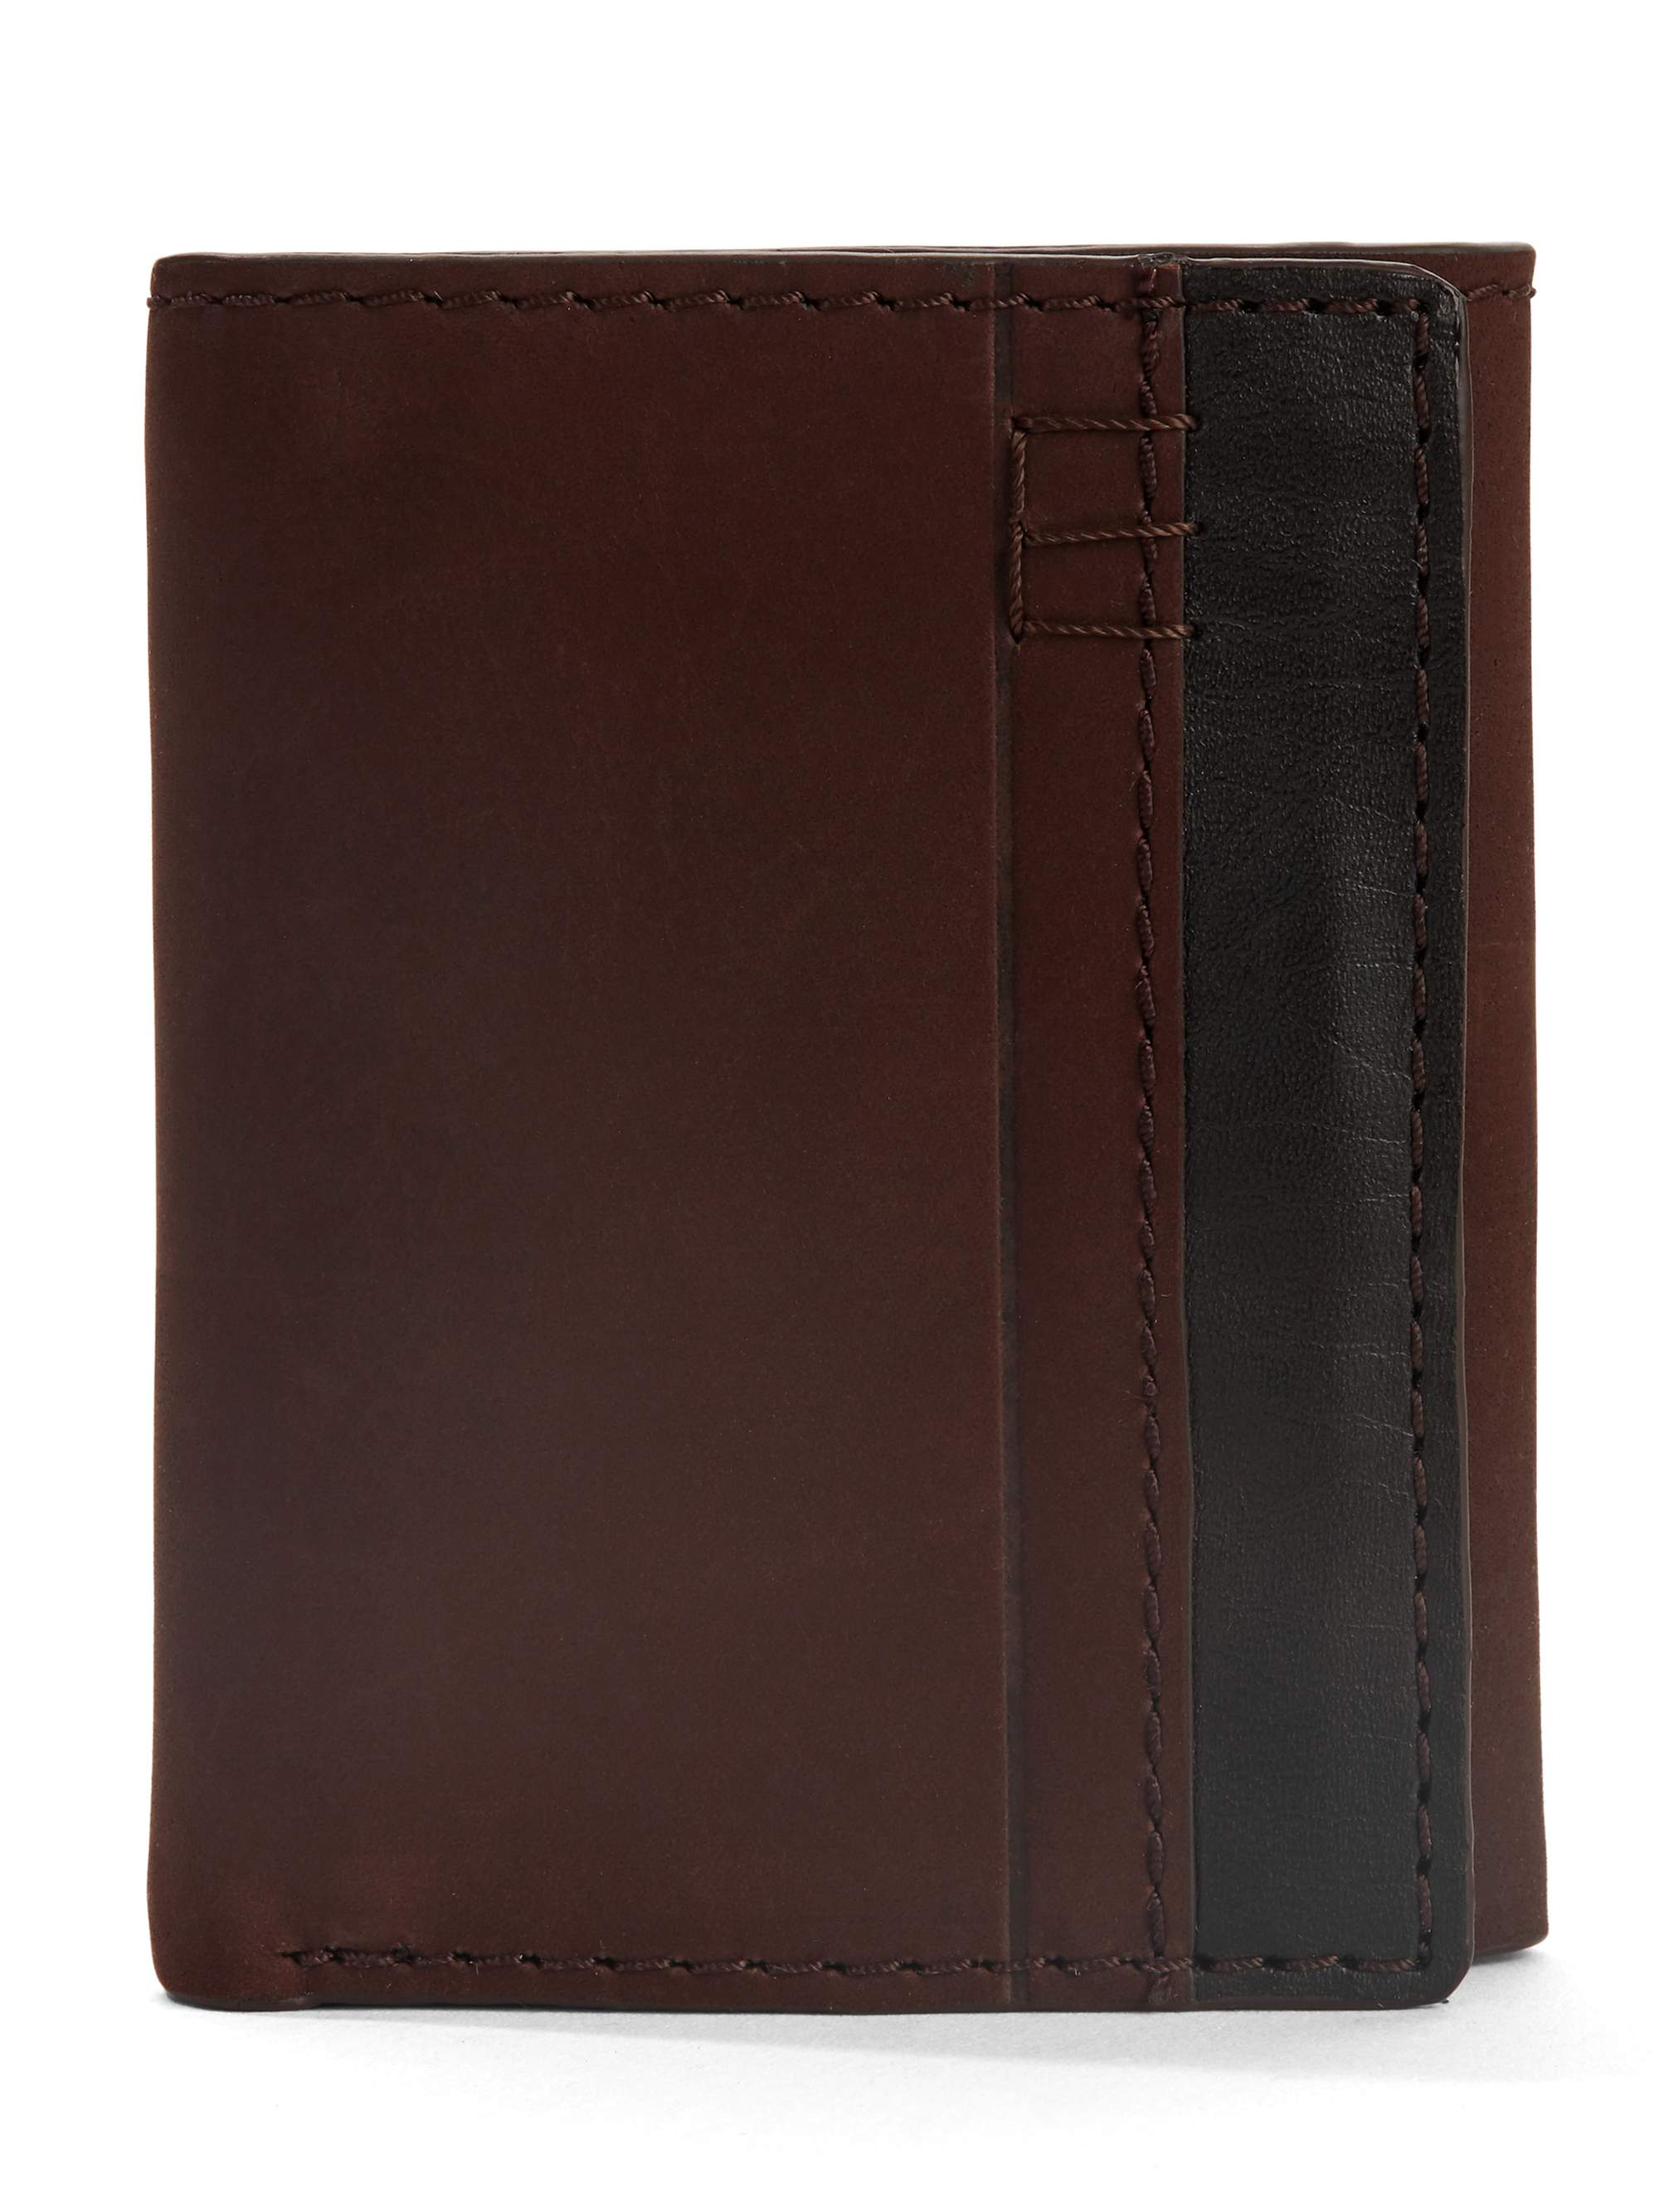 RELIC by Fossil Brock Trifold Wallet